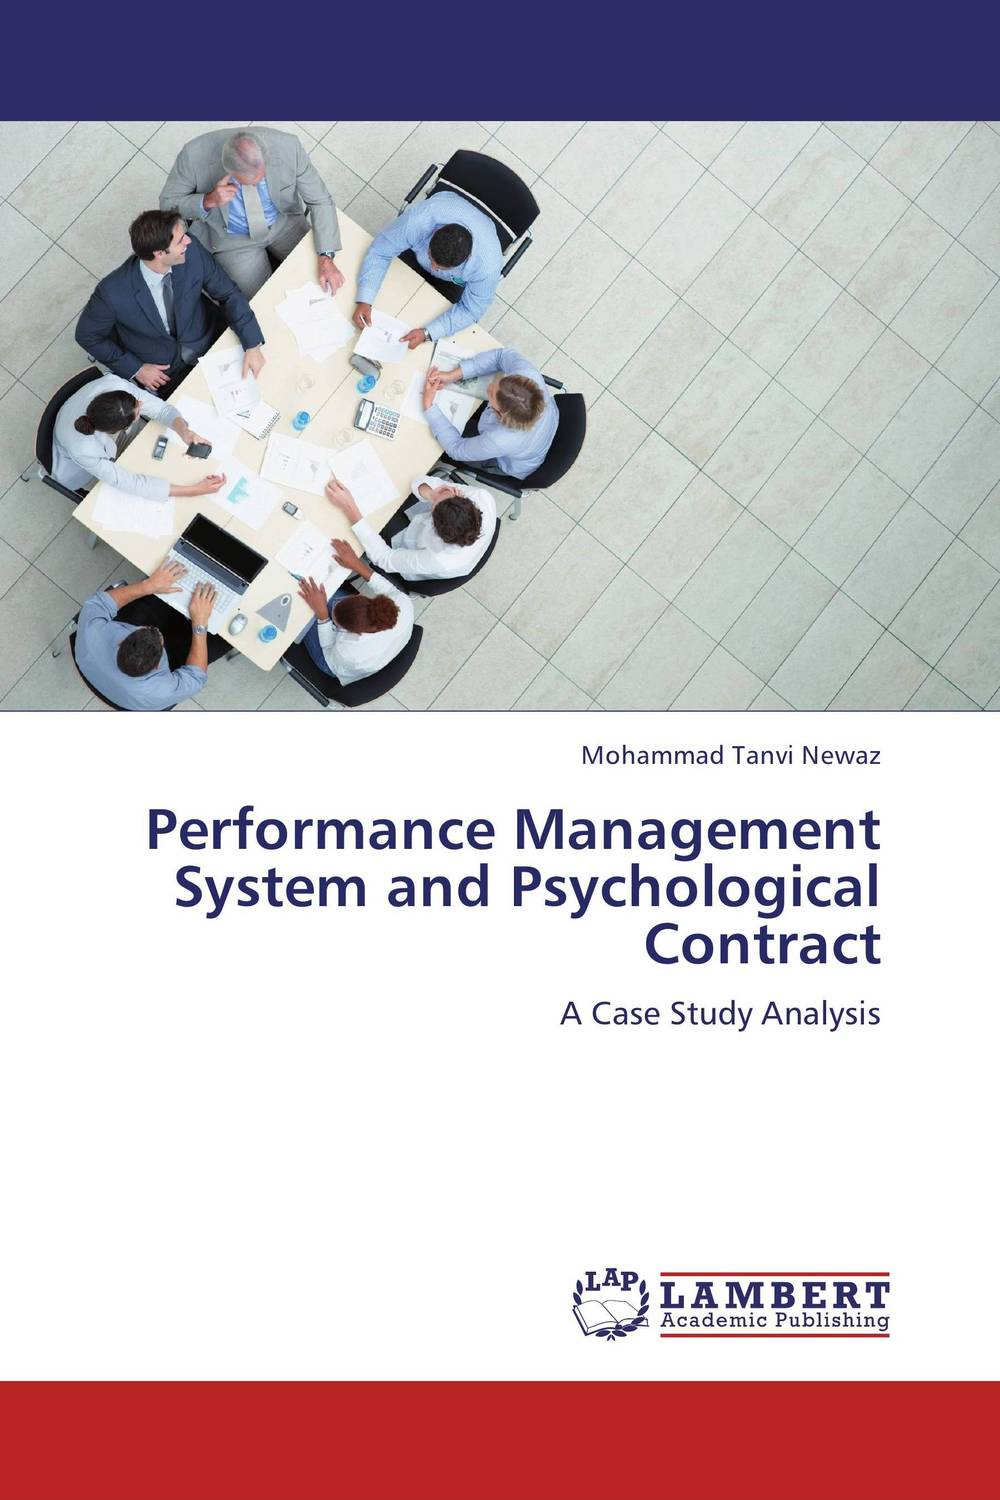 Performance Management System and Psychological Contract university management in practice and performance evaluation